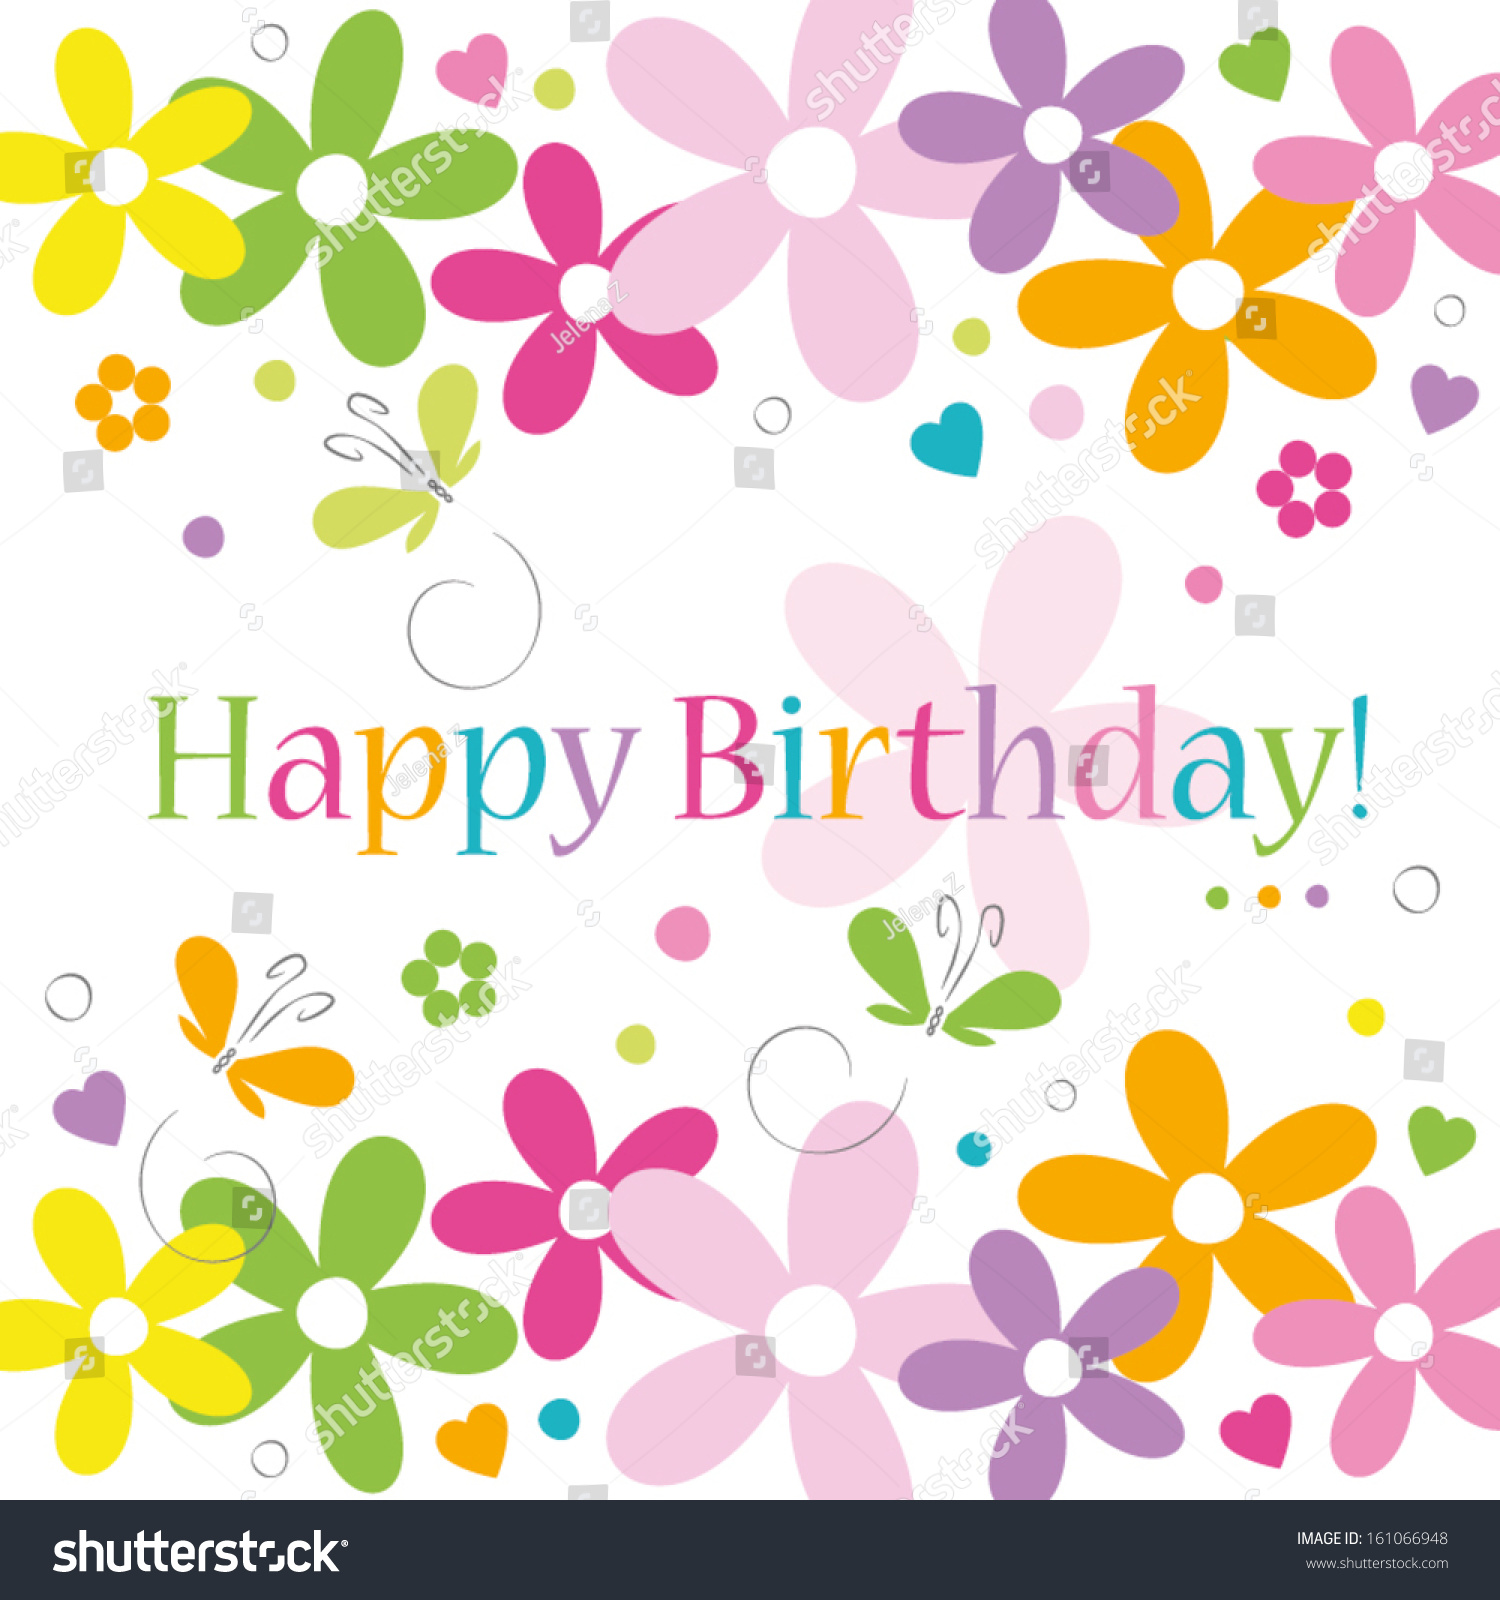 Hearts flowers butterflies happy birthday card stock vector 2018 hearts flowers and butterflies happy birthday card on white background izmirmasajfo